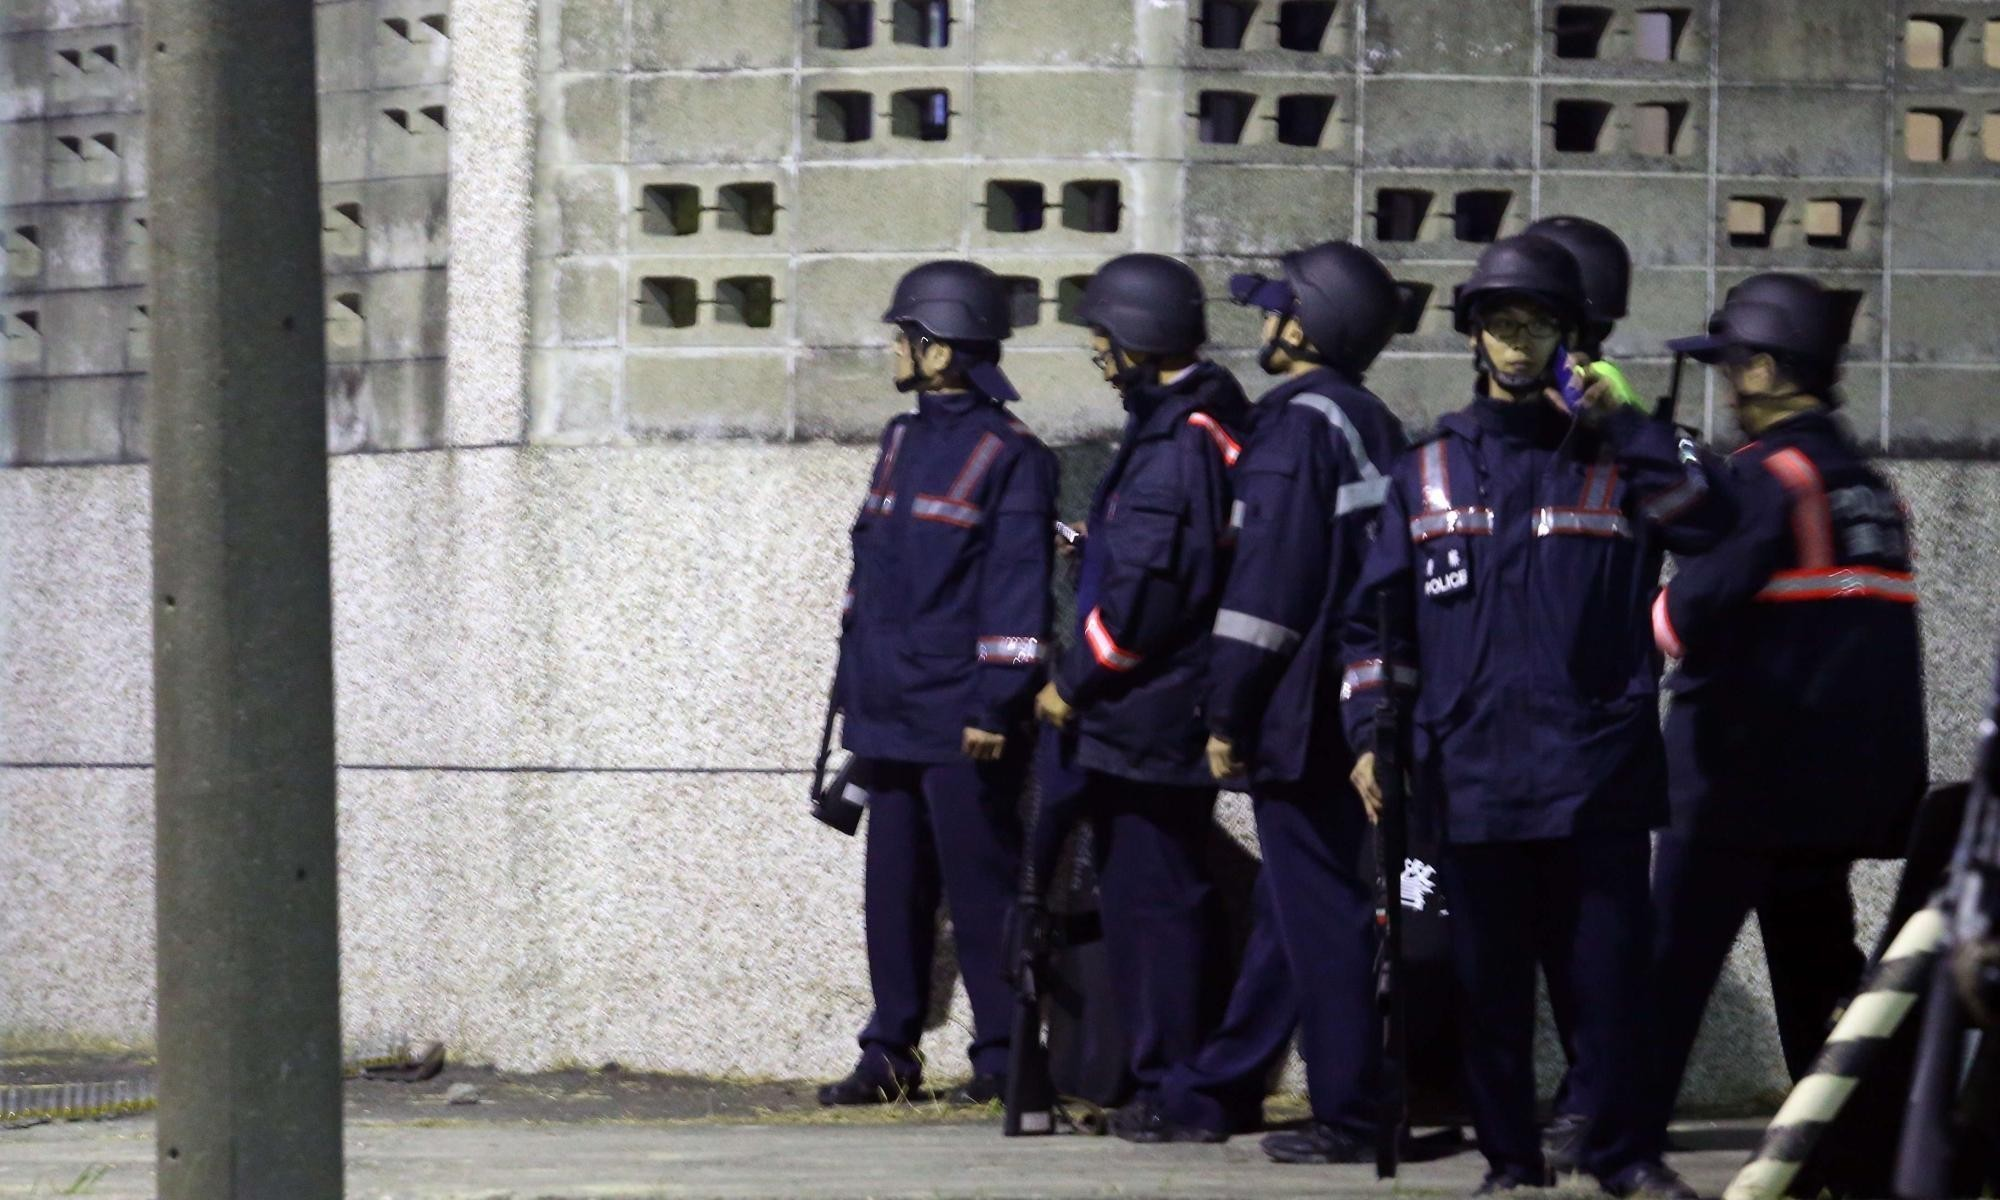 Six prisoners reported to have killed themselves after taking hostages in Taiwan